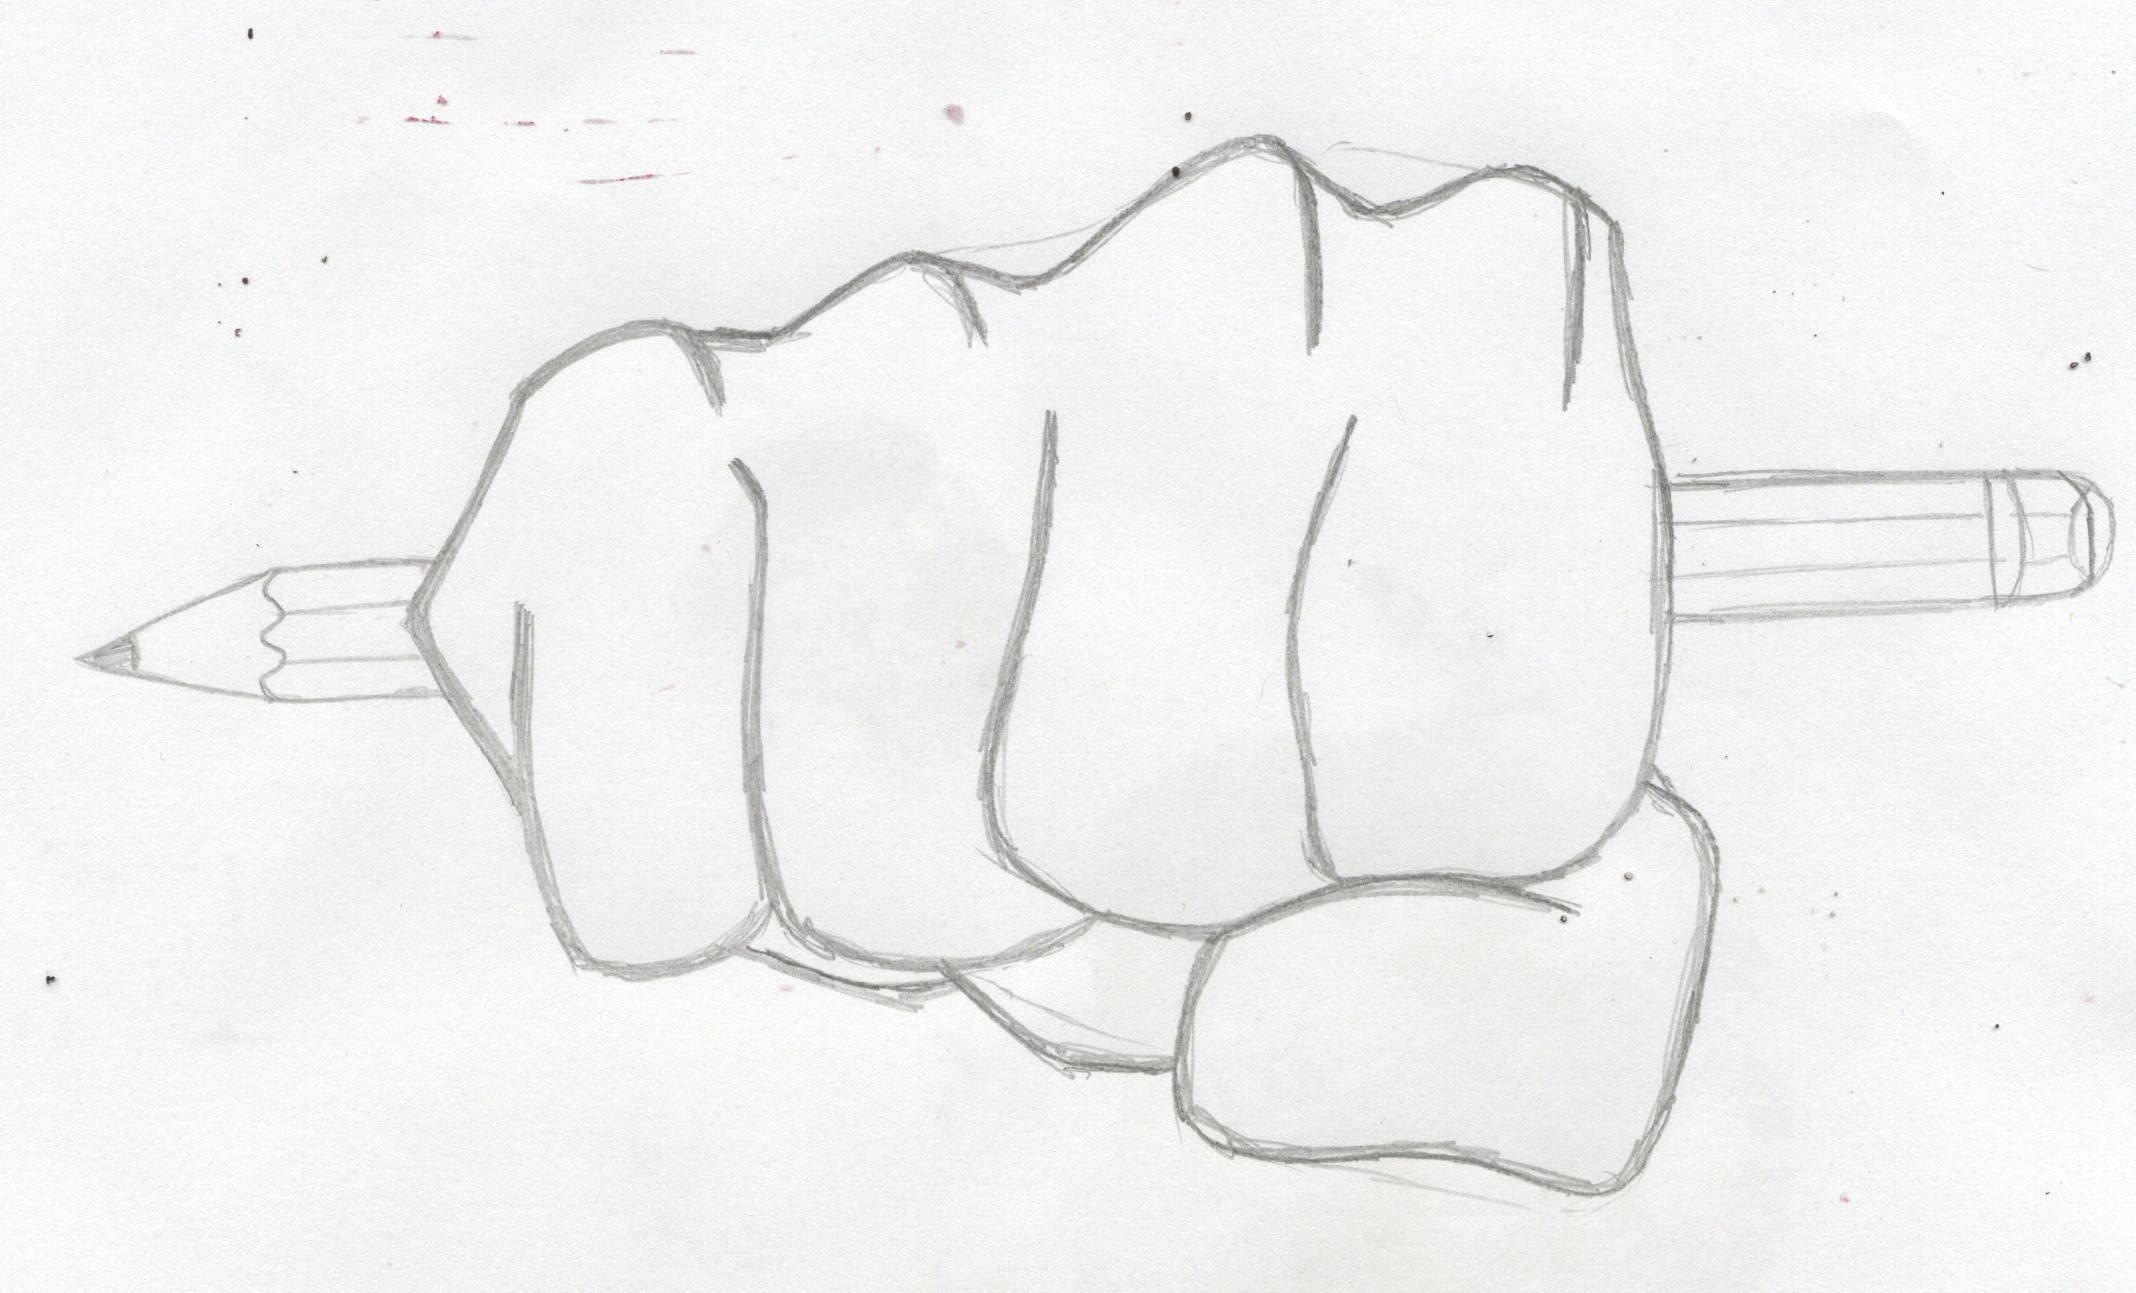 2136x1293 Sketch Of A Fist (Primary Sources) Lewisrogers